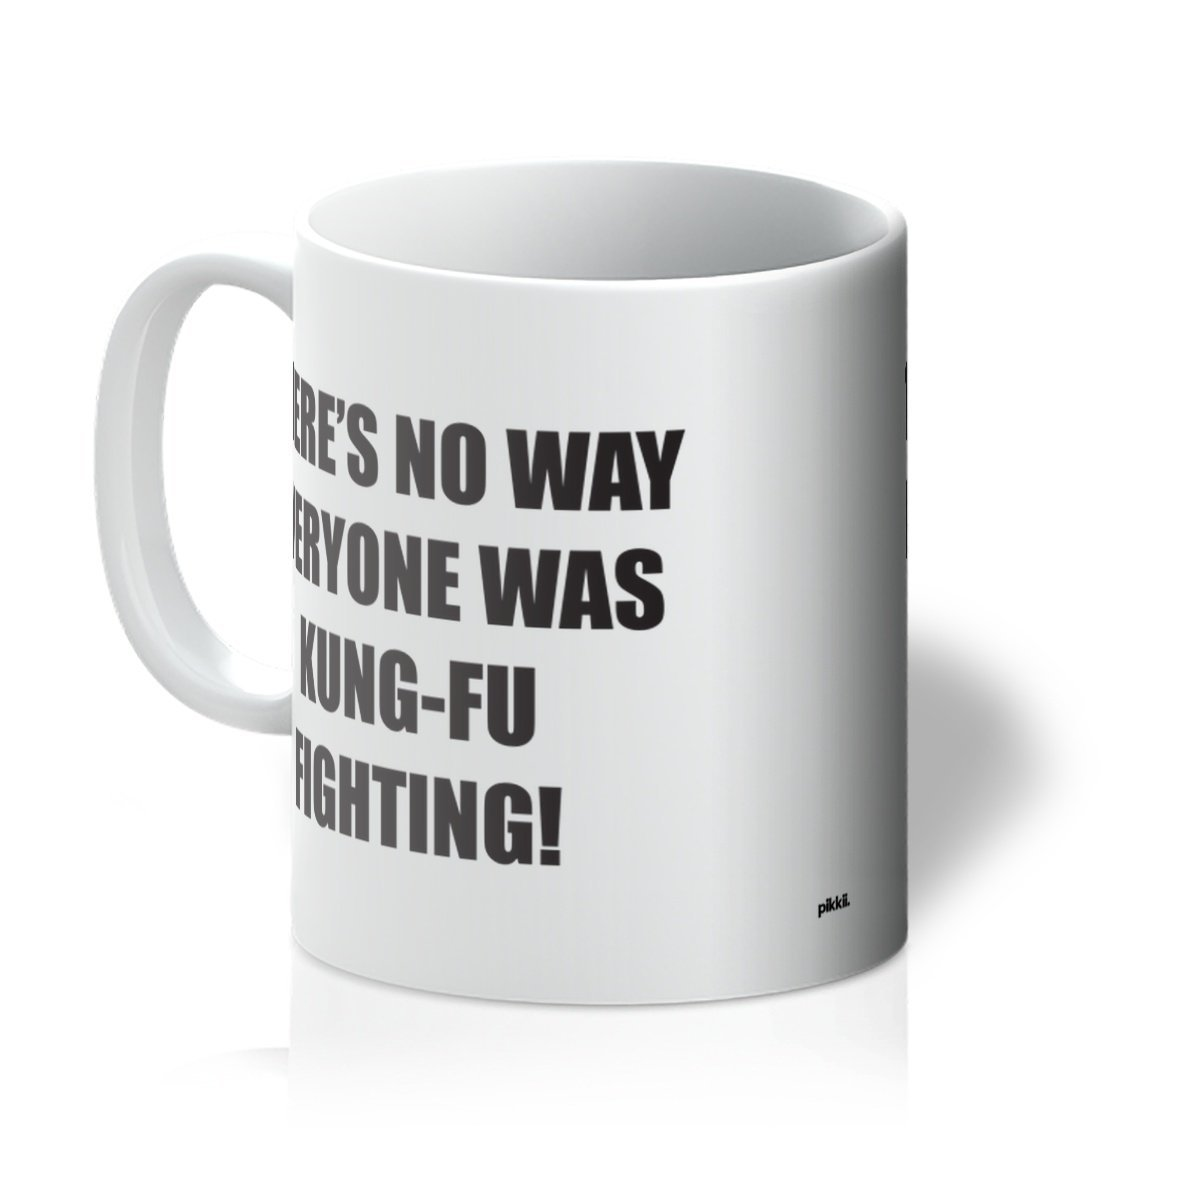 There's no way everyone was kung-fu fighting coffee mug